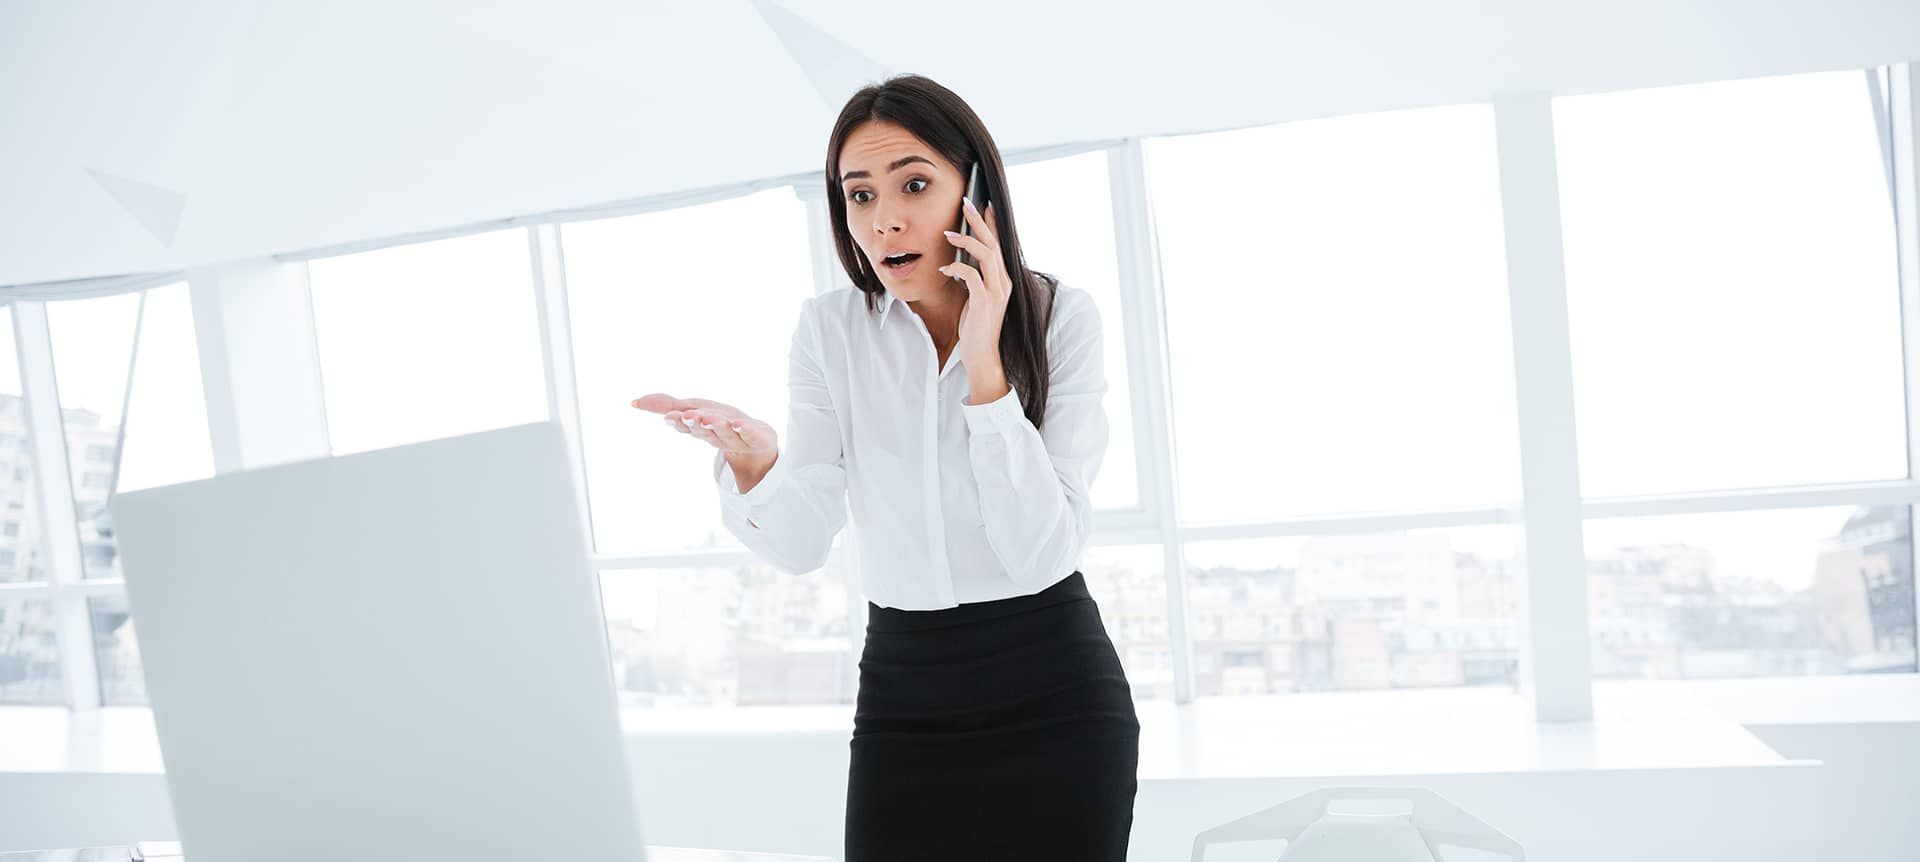 A talent acquisition specialist speaking on the phone